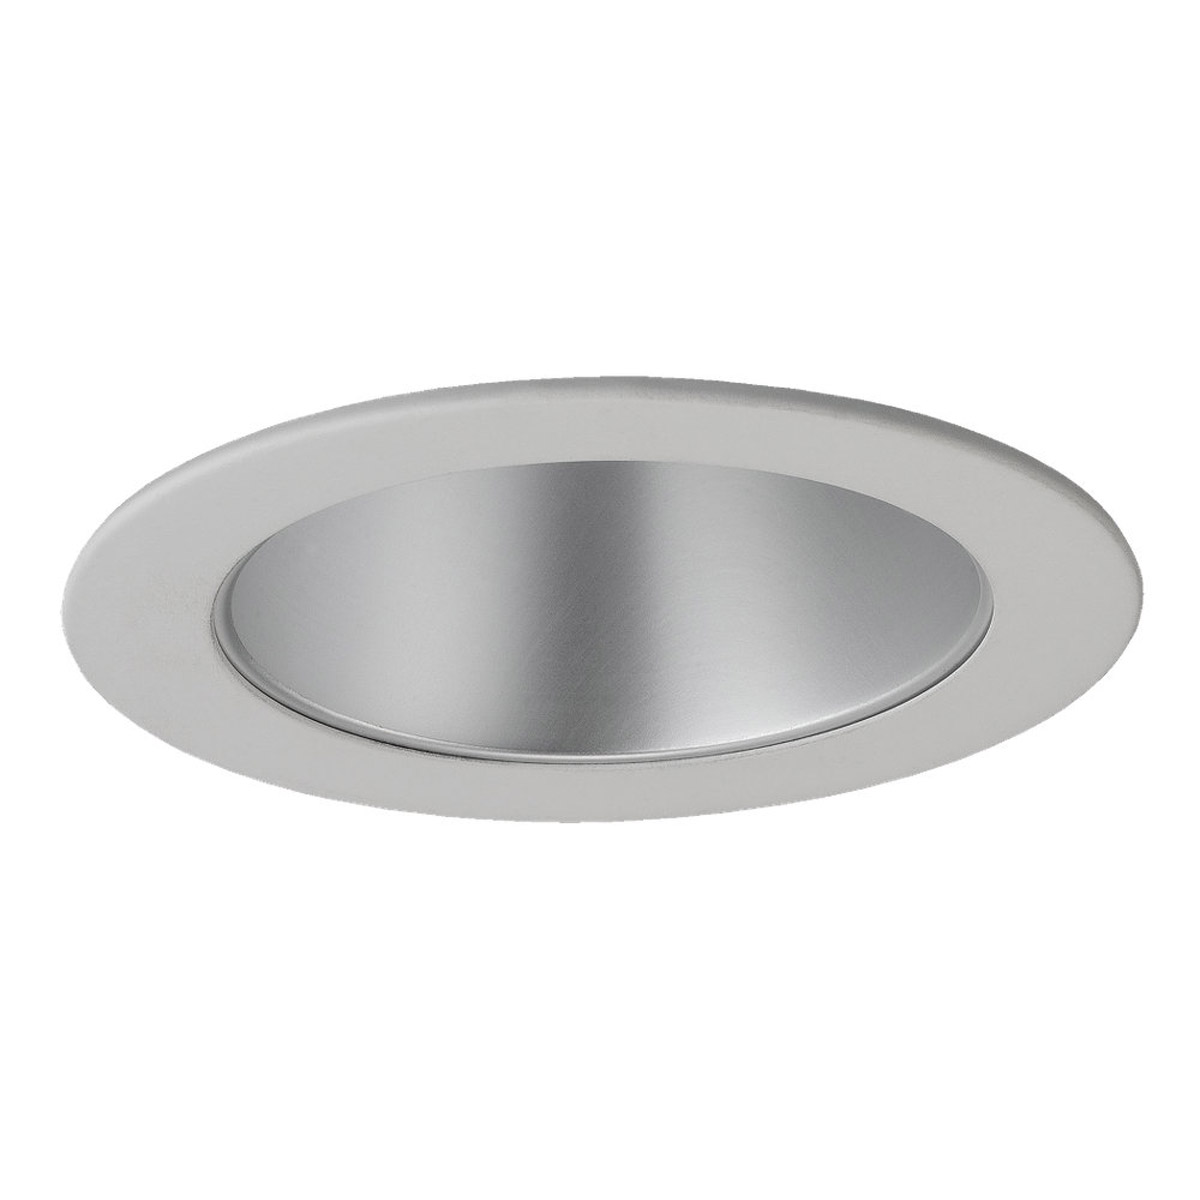 Sea Gull Lighting Signature Recessed Trim Only in Satin Nickel - White 1232AT-861